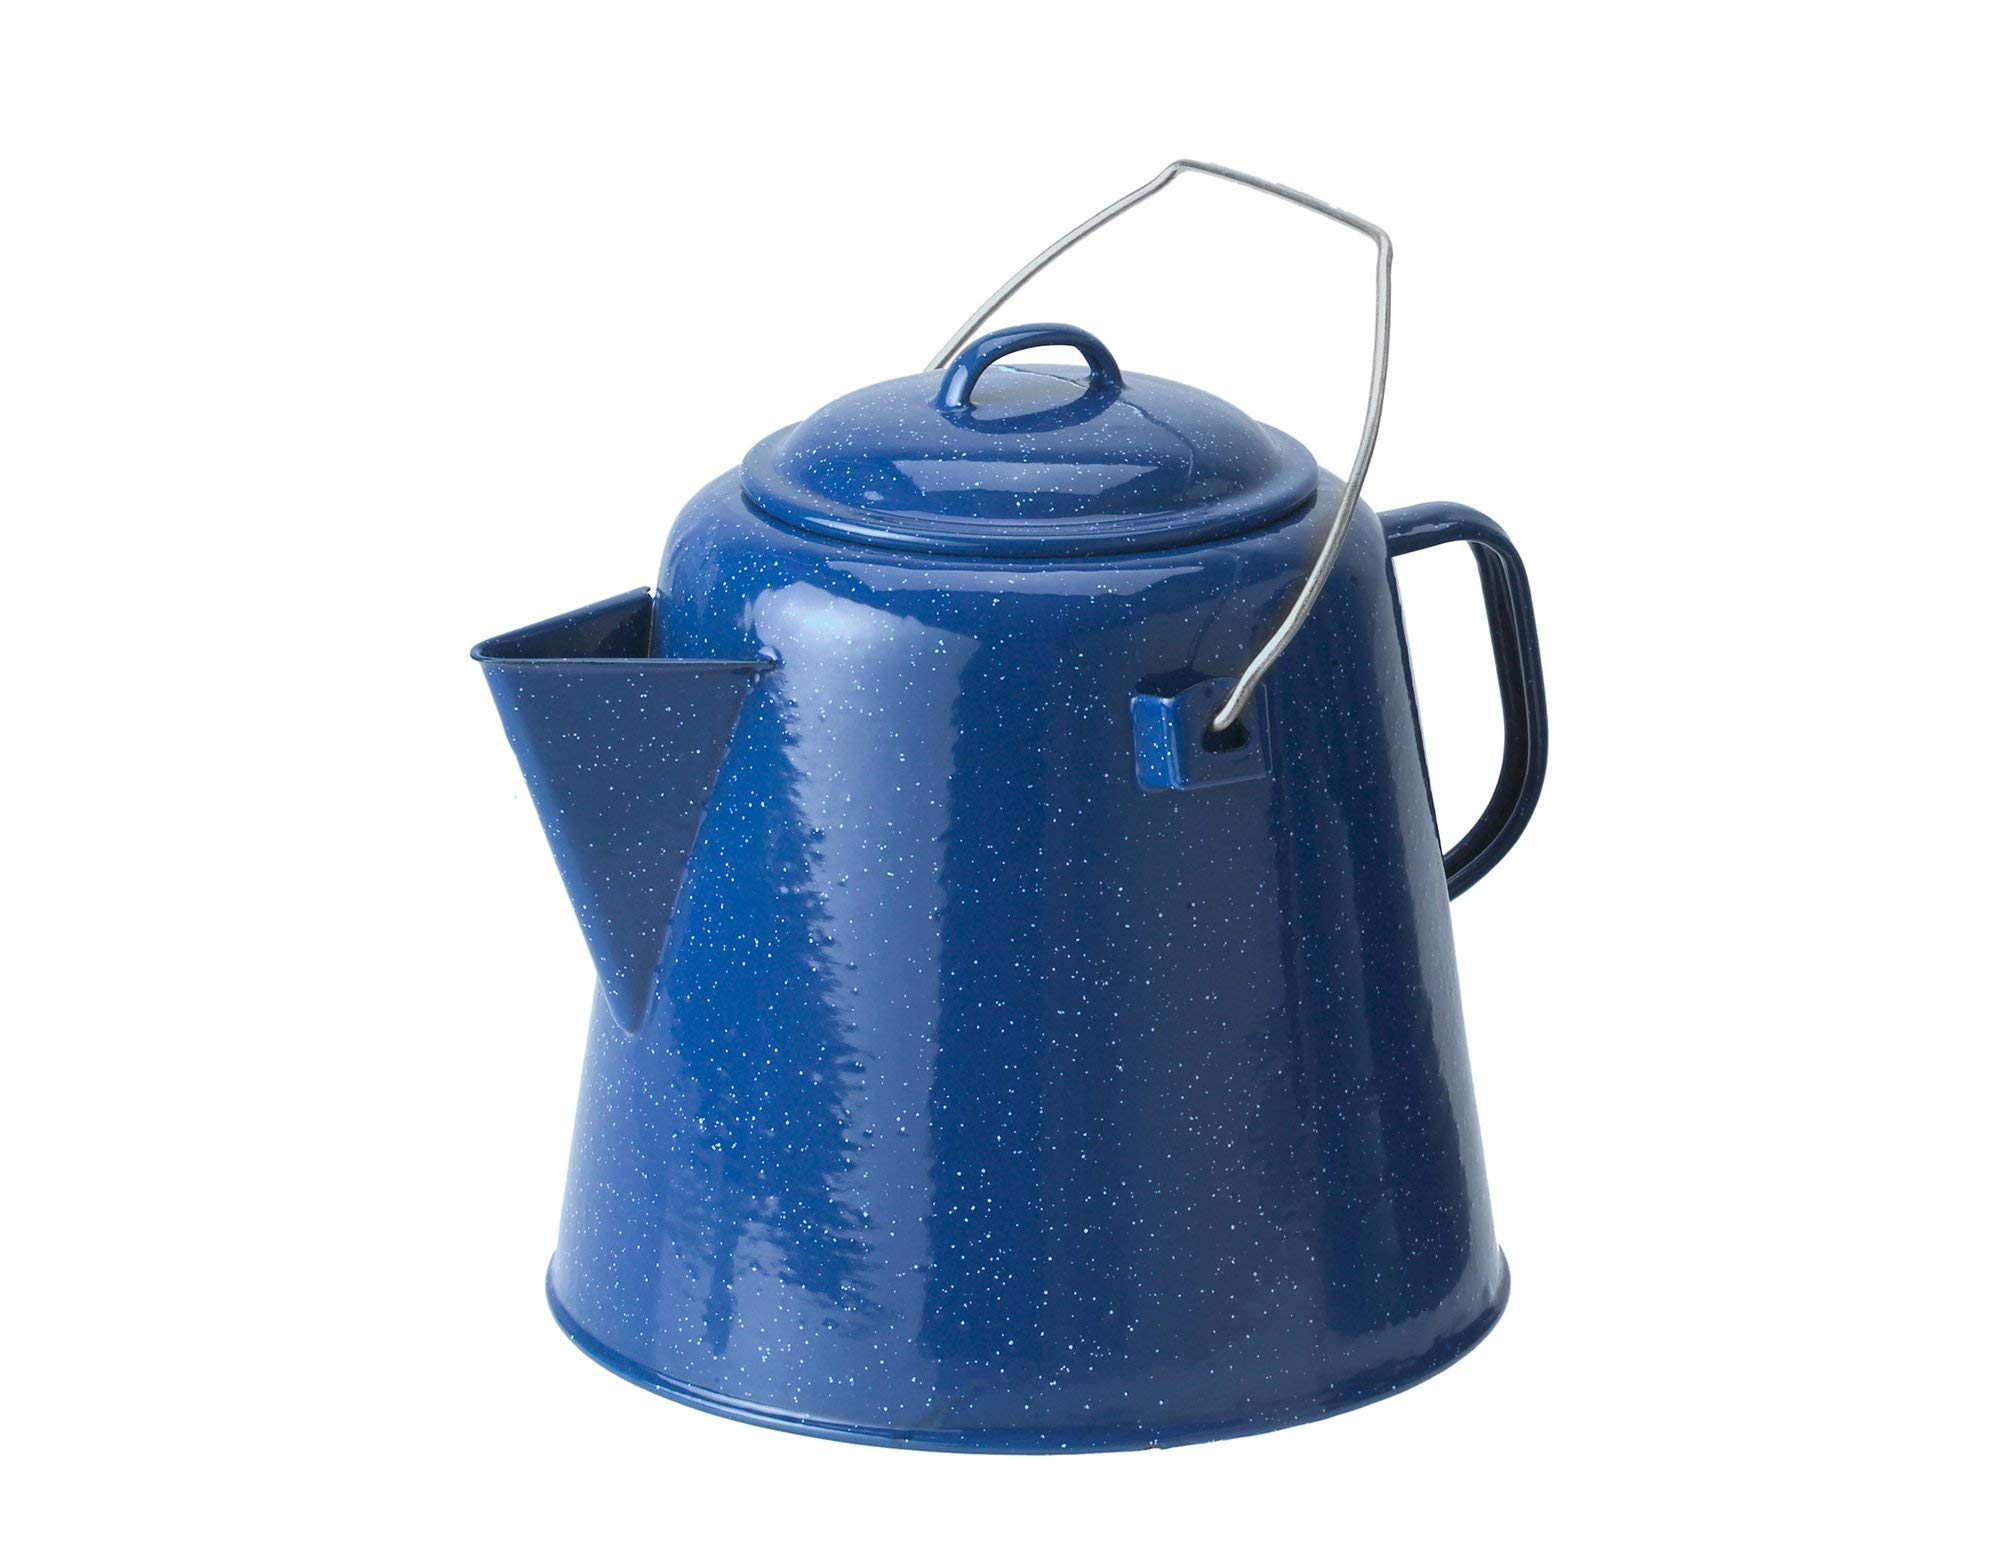 GSI Outdoors 20 Cup Coffee Boiler, Blue (Renewed) by GSI Outdoors